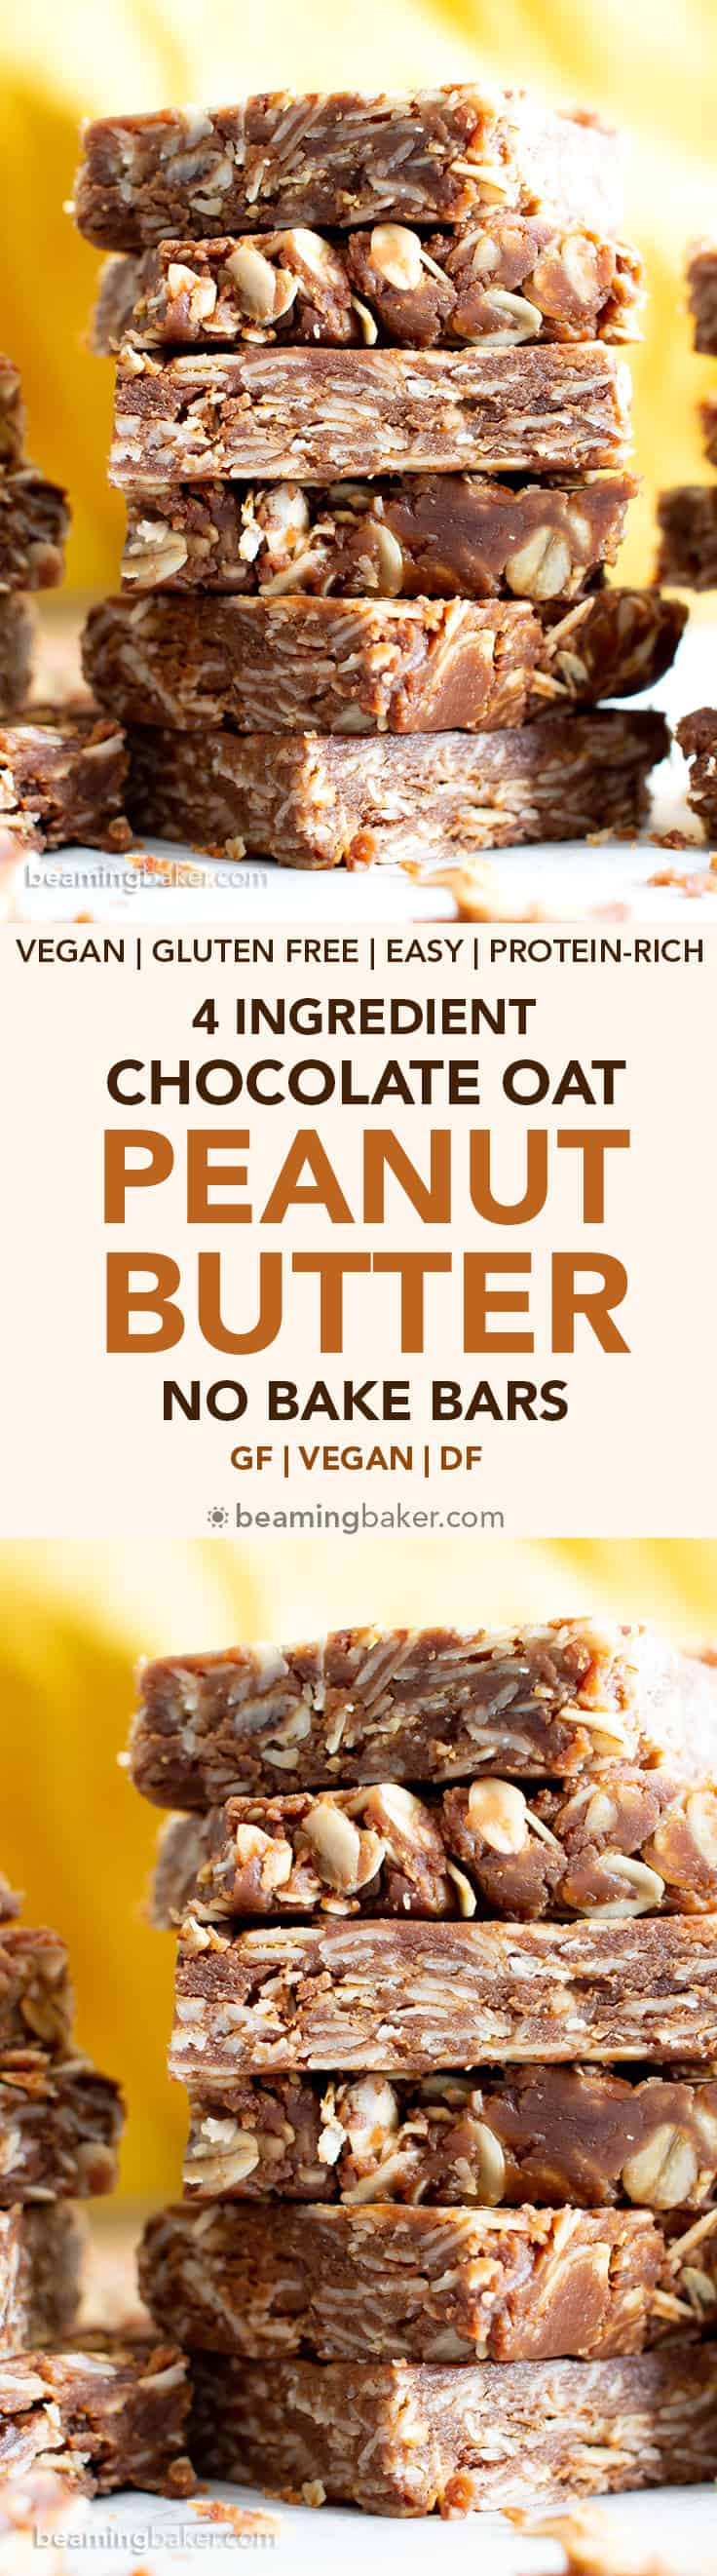 4 Ingredient No Bake Chocolate Peanut Butter Oatmeal Bars (V, GF): a quick 'n easy recipe for protein-packed no bake oatmeal bars bursting with chocolate and peanut butter flavors! Made with whole ingredients. #Vegan #GlutenFree #DairyFree #ProteinPacked #Healthy #Snacks #NoBake #Chocolate #PeanutButter | Recipe at BeamingBaker.com